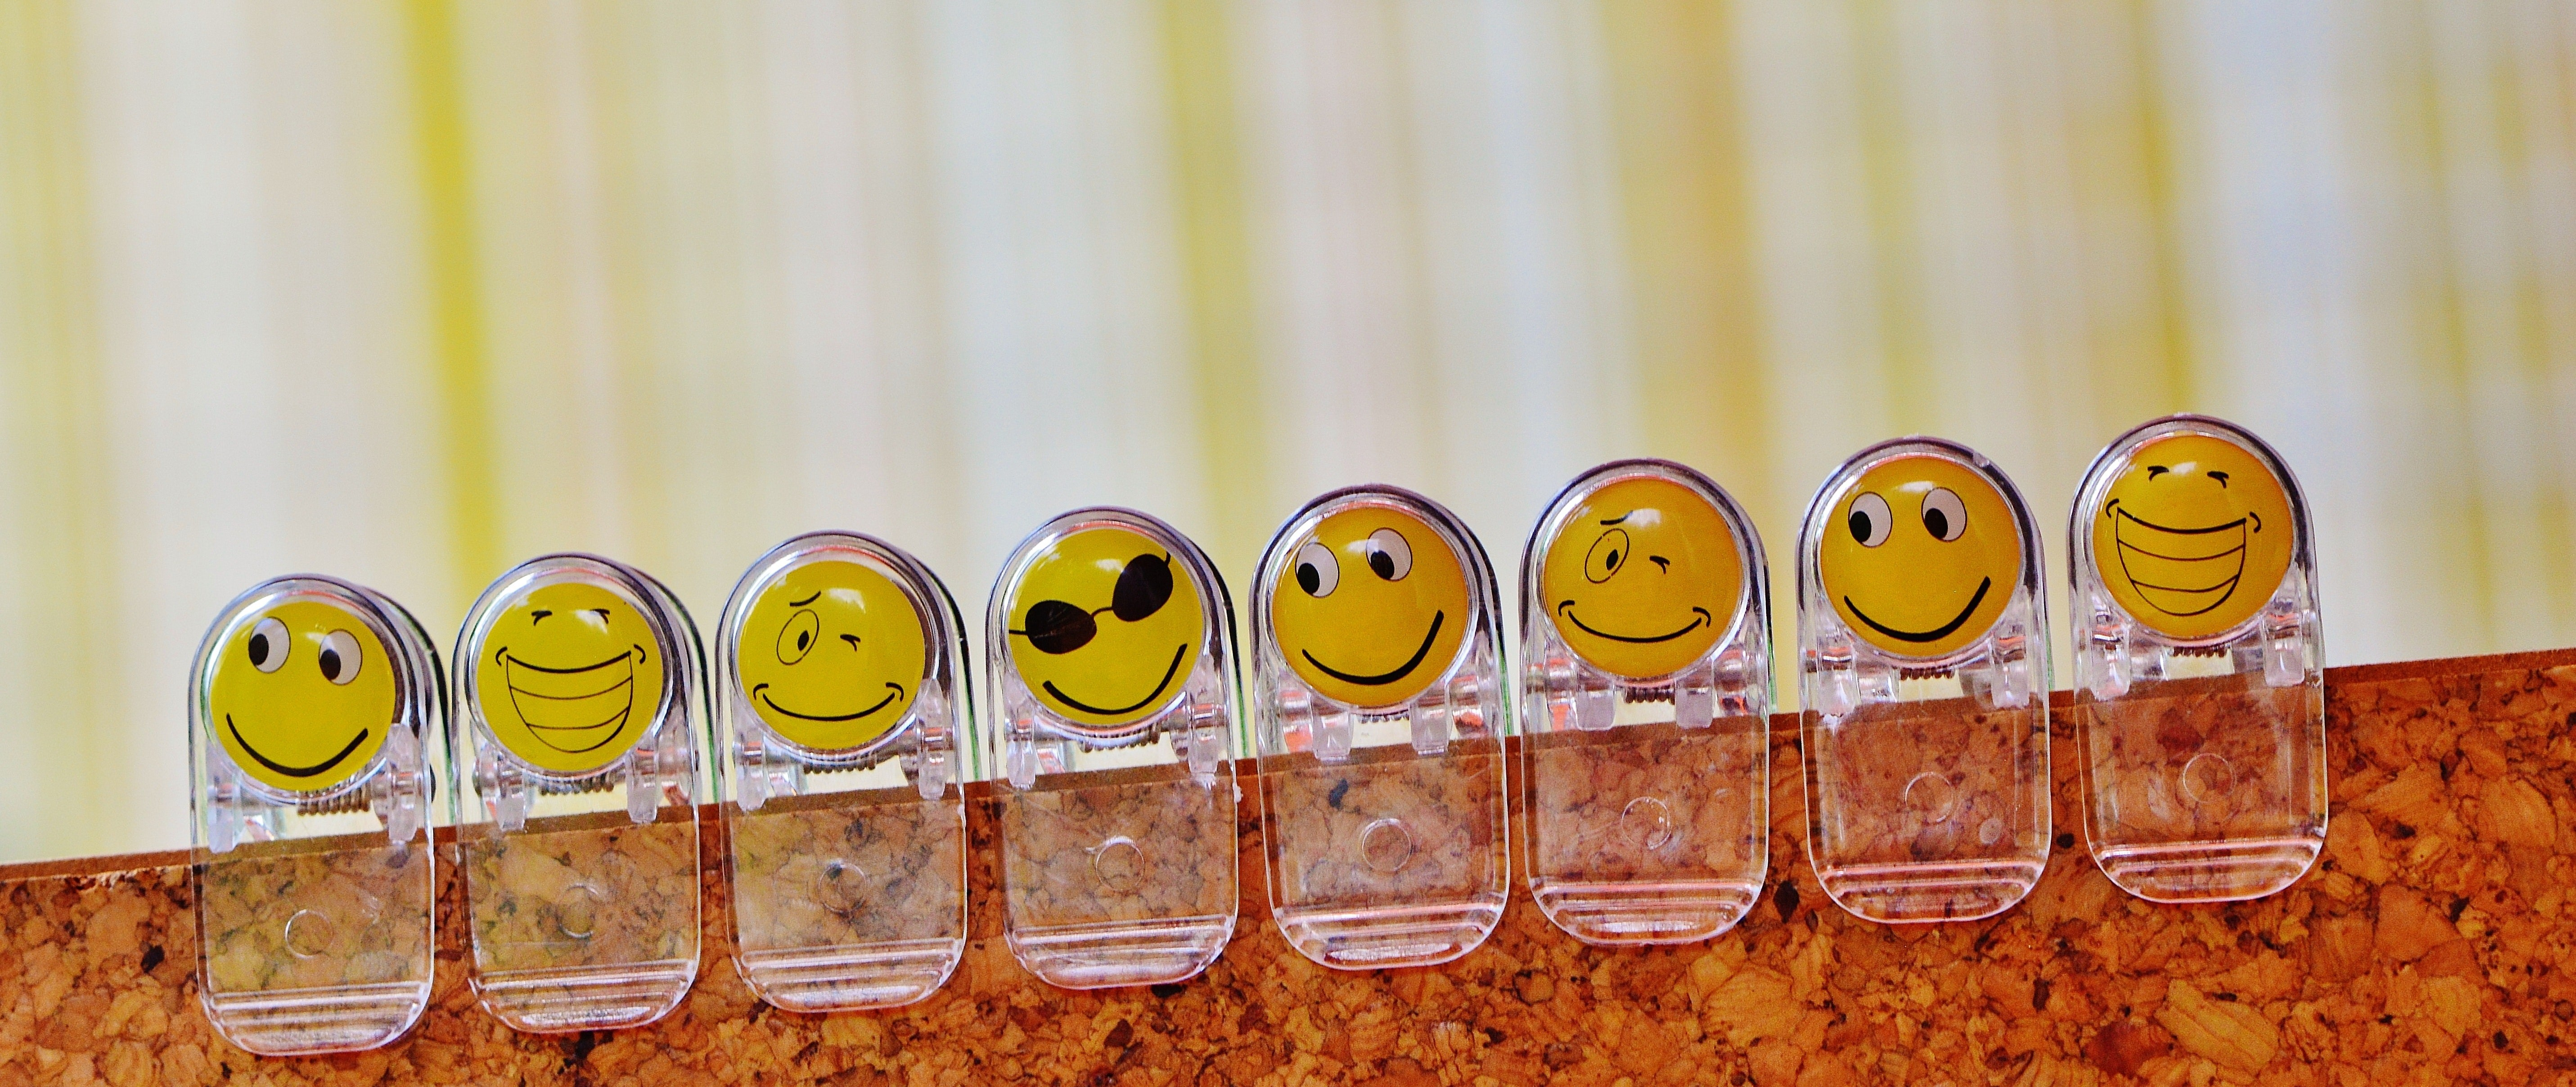 Clear clips with yellow heads showing various emoticon faces clipped in a row onto a cork board